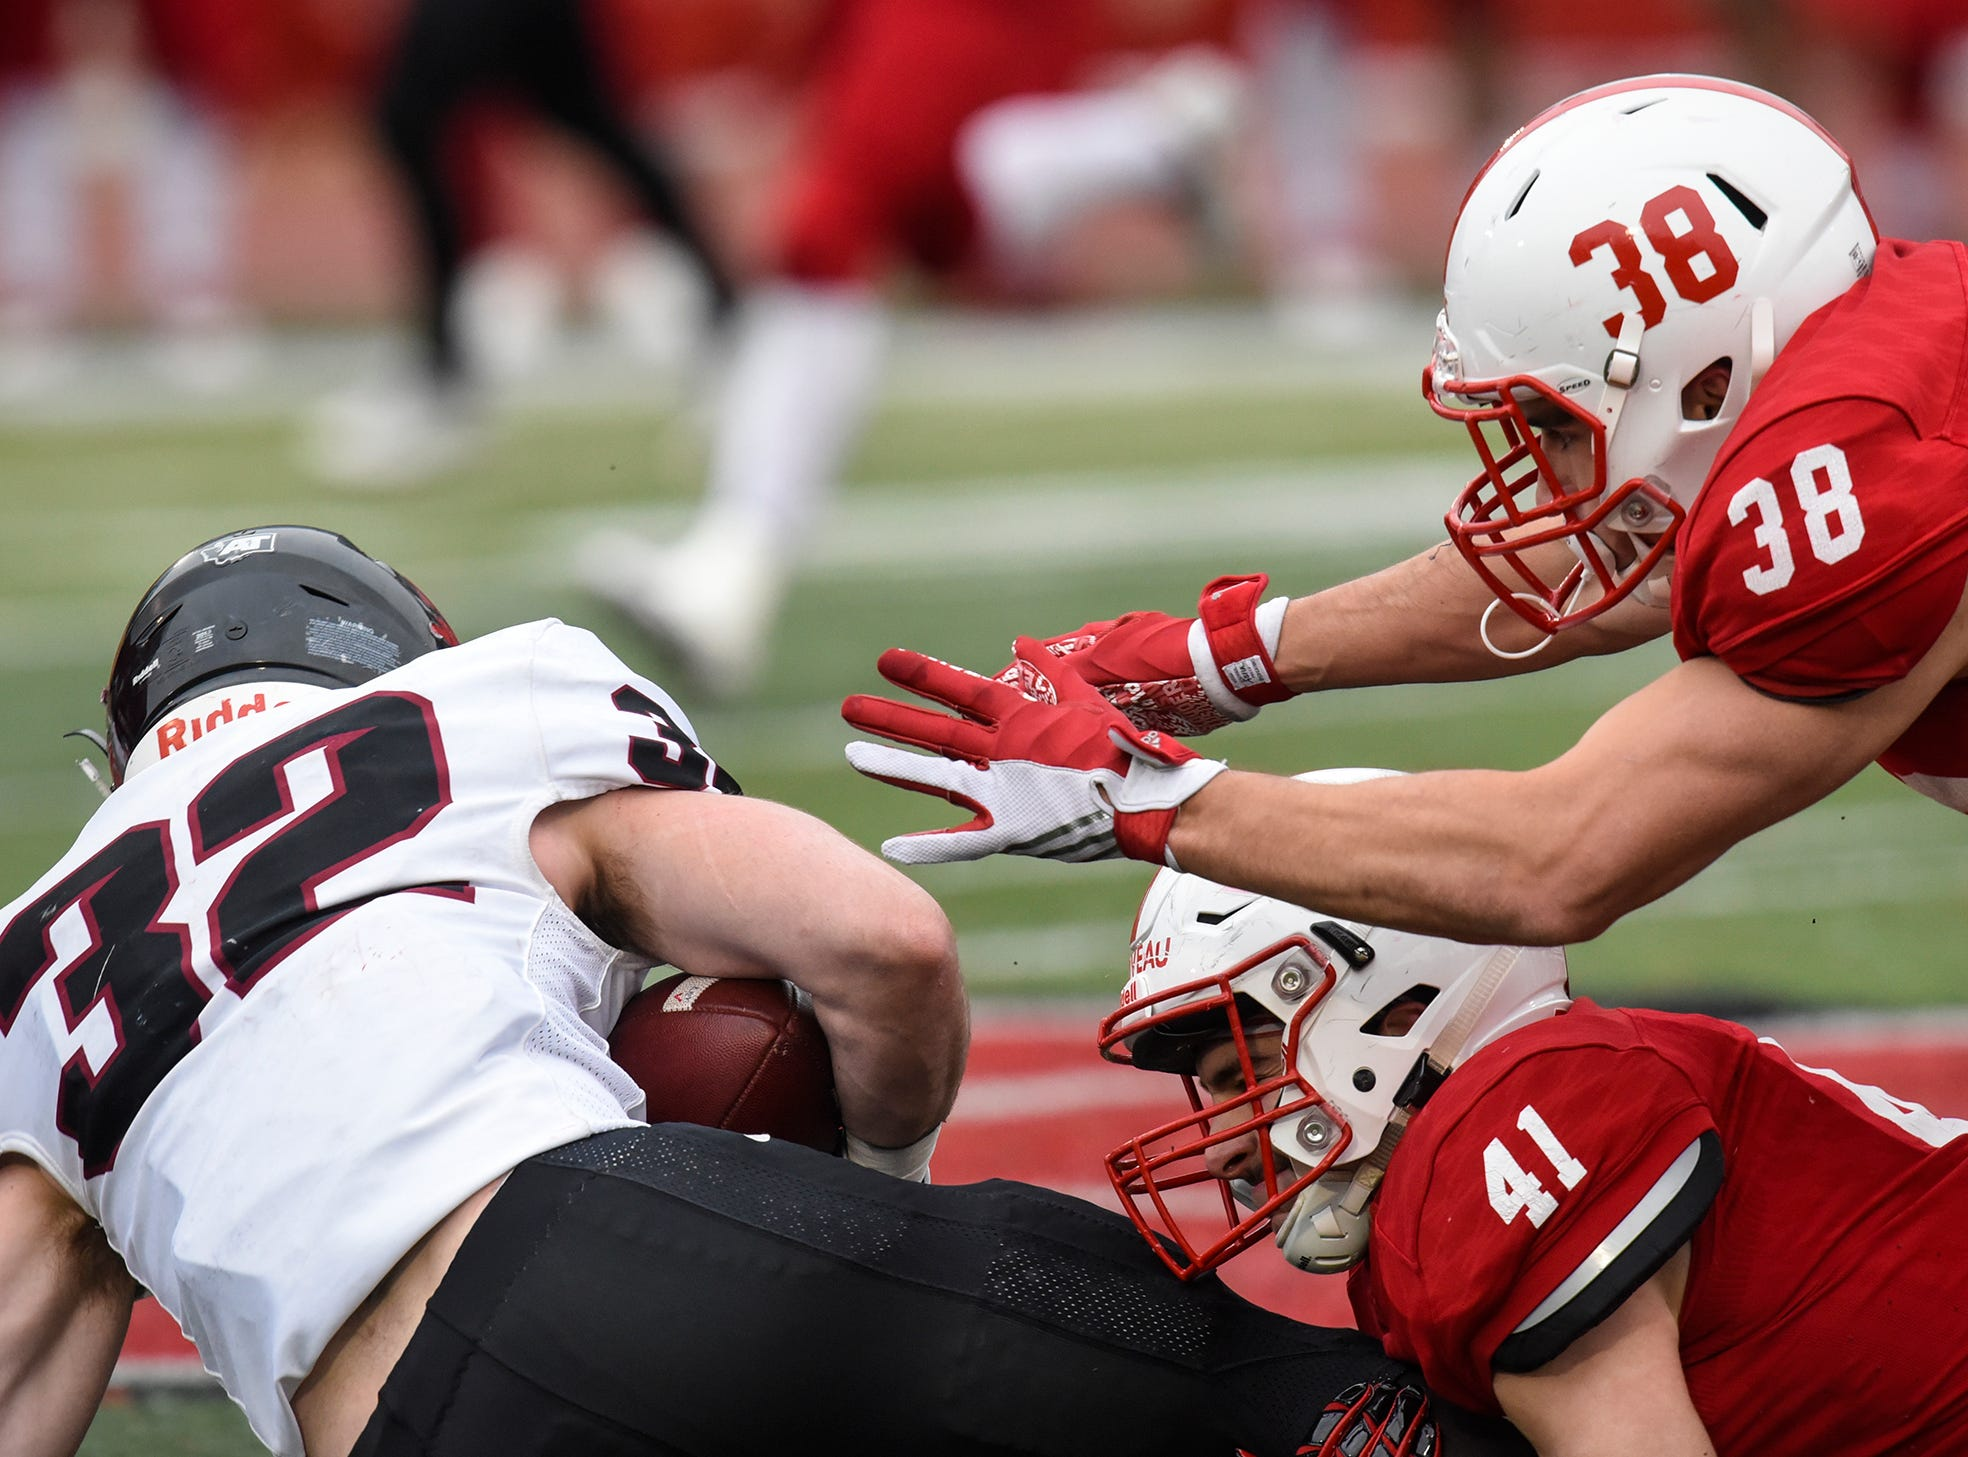 Alex Sais and Richard Carriveau of St. John's team up on a tackle during the Saturday, Nov. 24, game against Whitworth at Clemens Stadium in Collegeville.